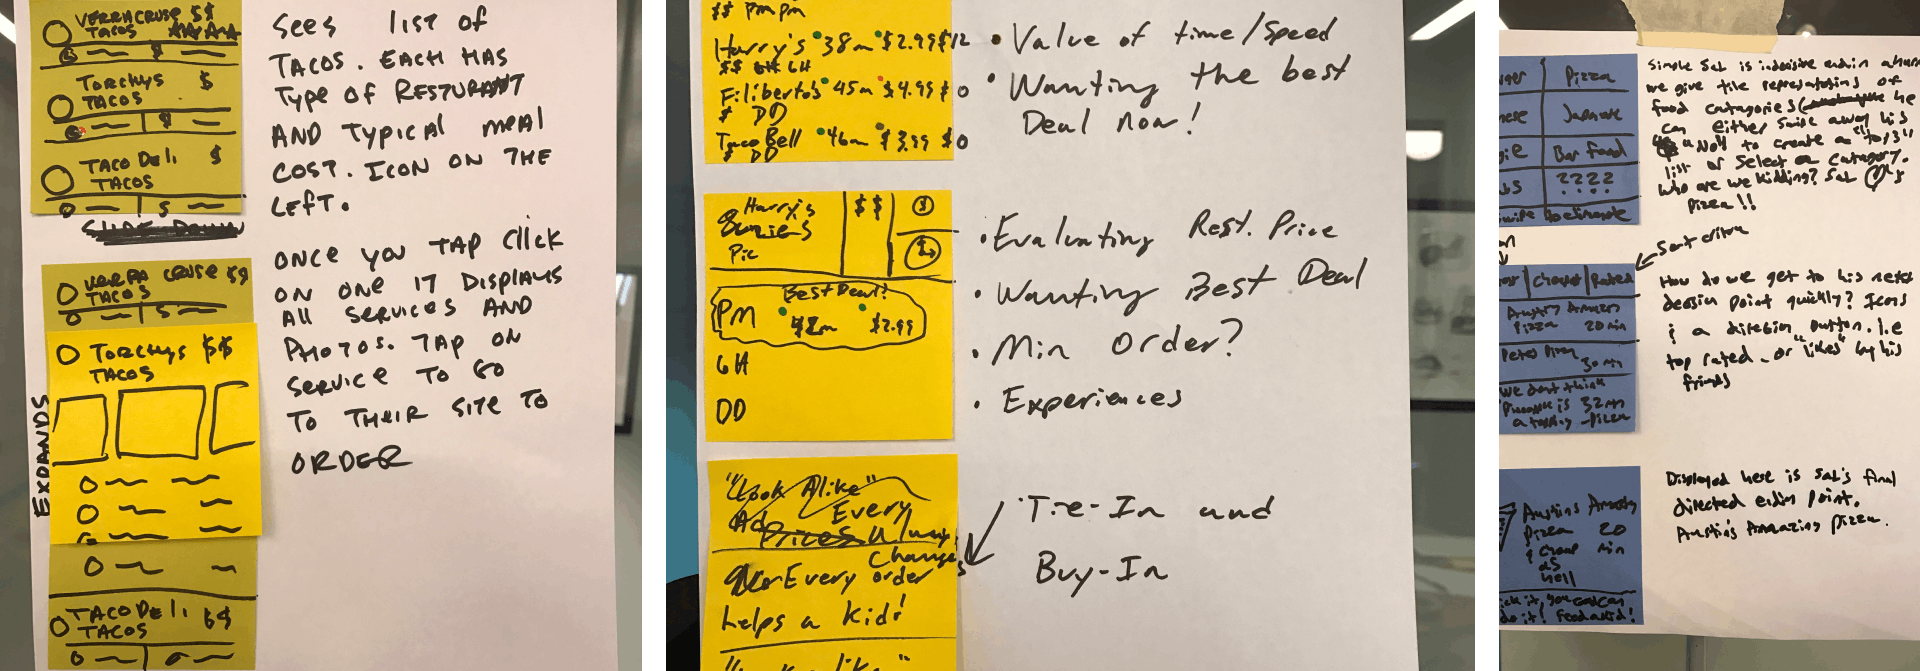 Three photos of design sprint storyboards, sketches on stickies and notes, next to each other